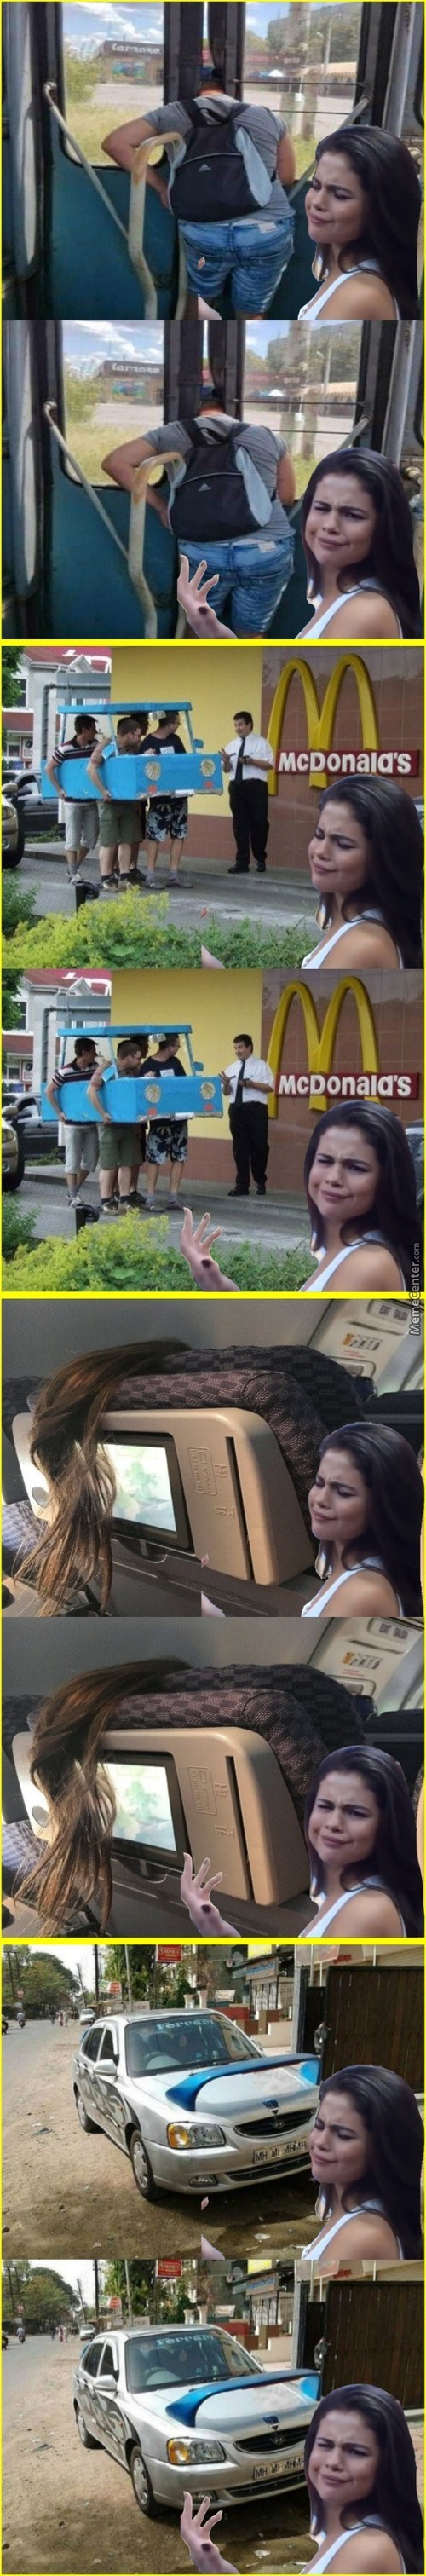 Bad Photoshop Selena